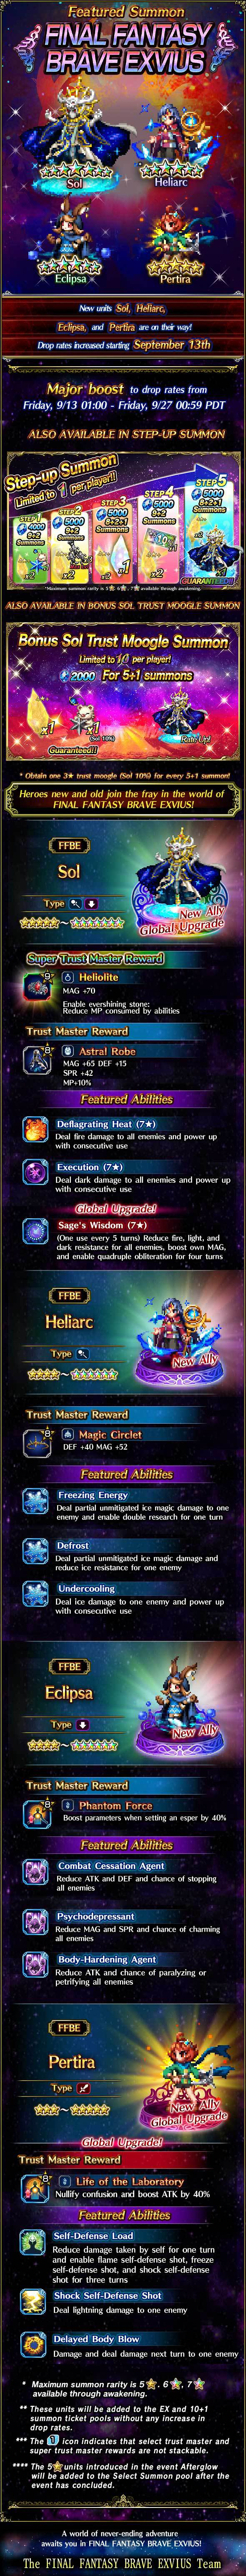 Invocations du moment - FFBE (Sol) - du 13/09 au 27/09/19 FeaturedSummonSol